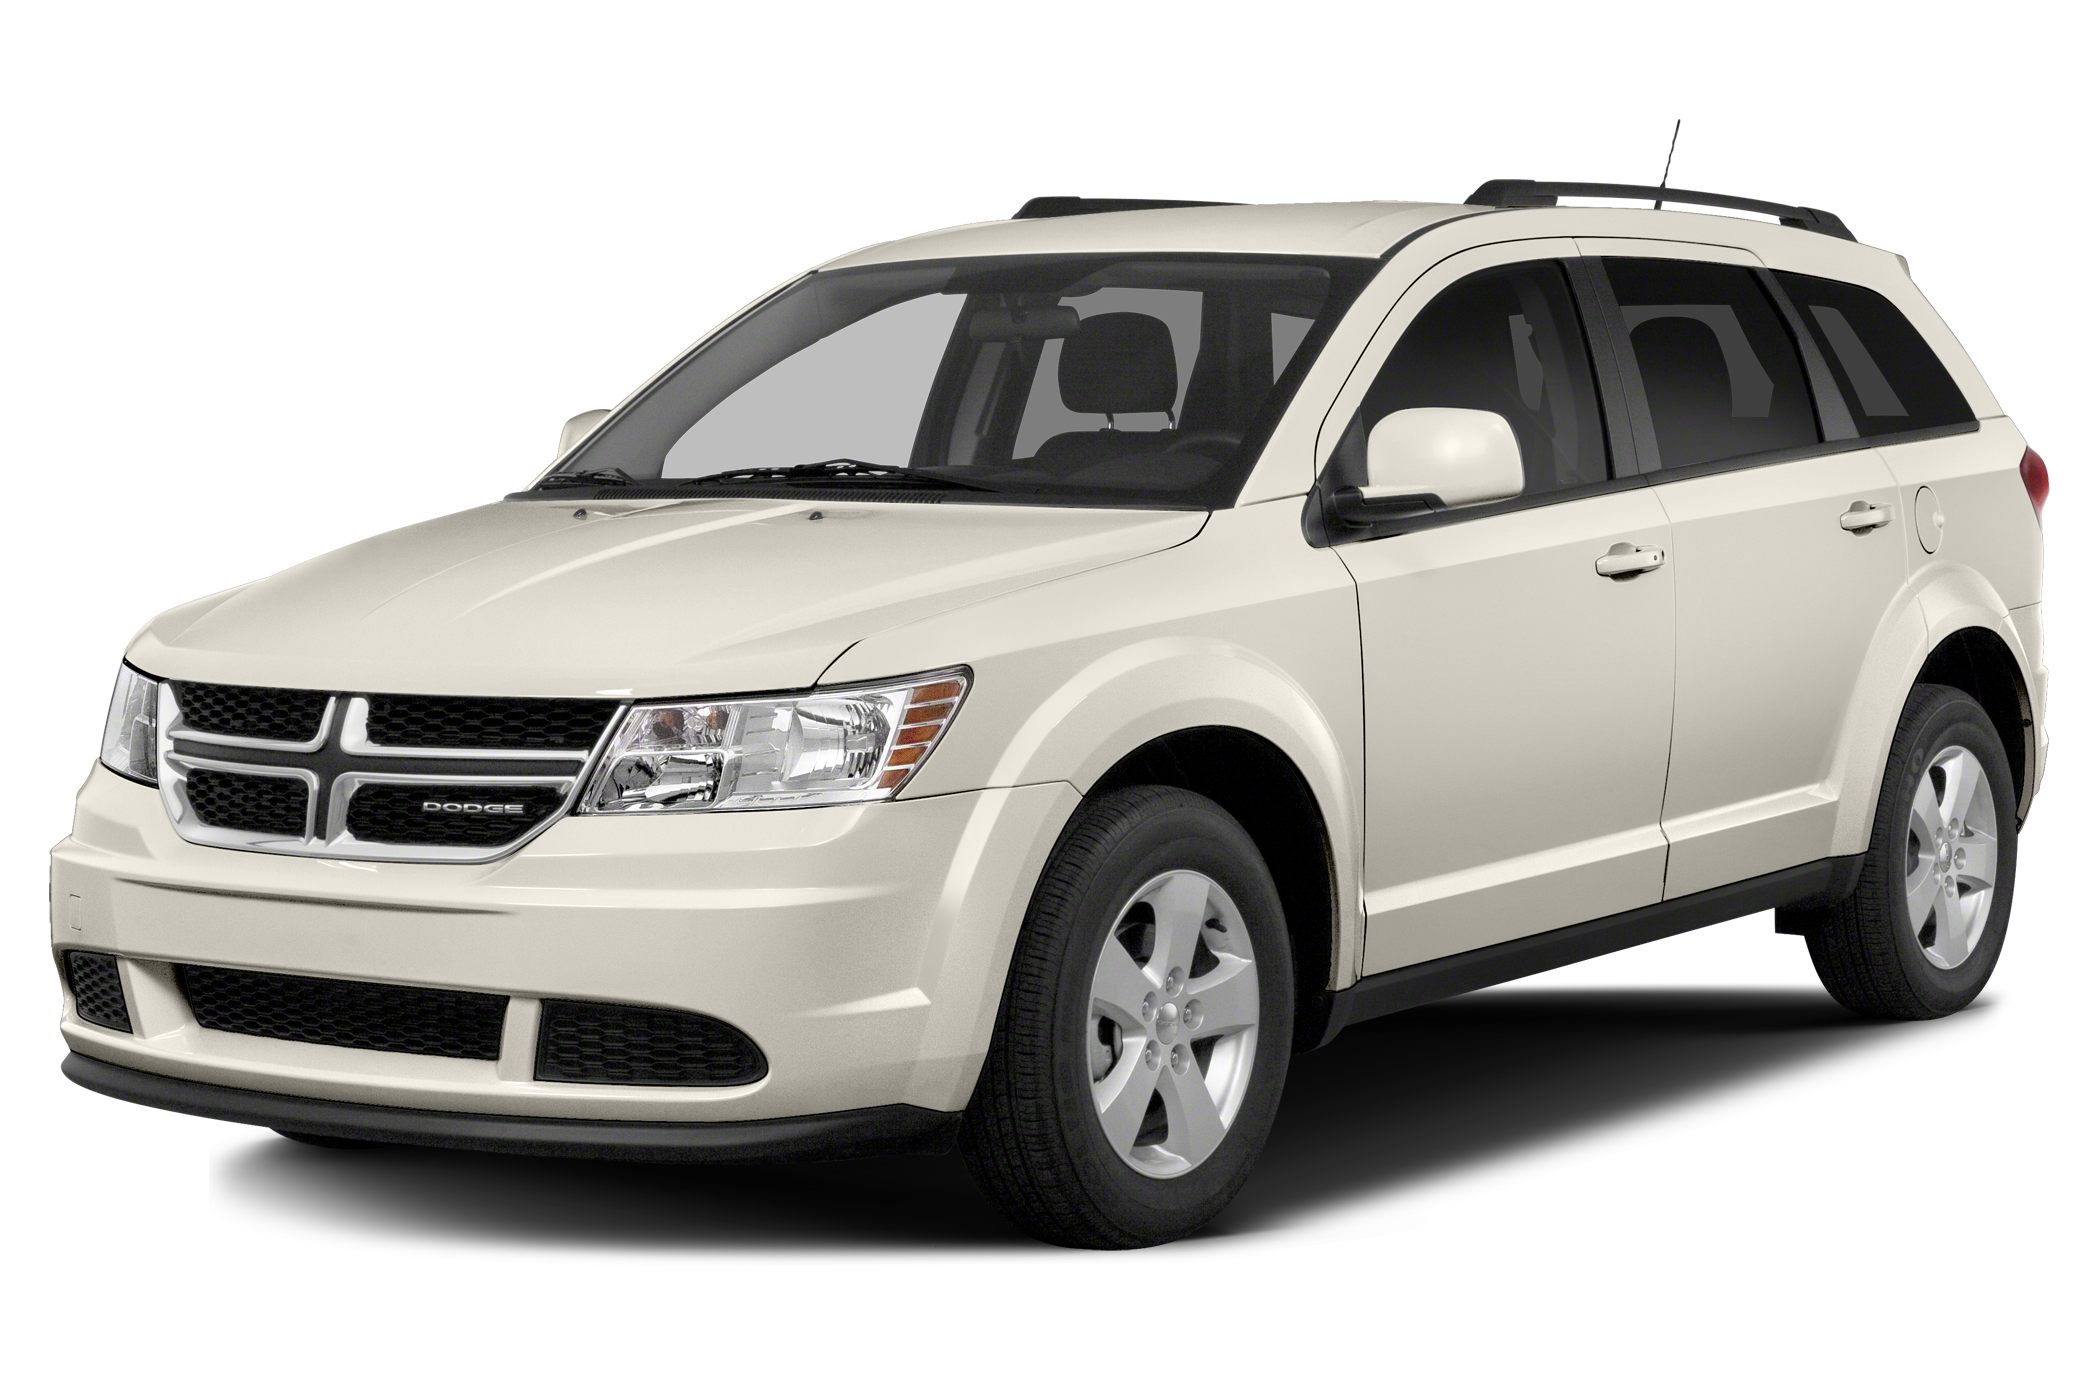 2015 Dodge Journey SE SUV for sale in Tacoma for $22,990 with 12 miles